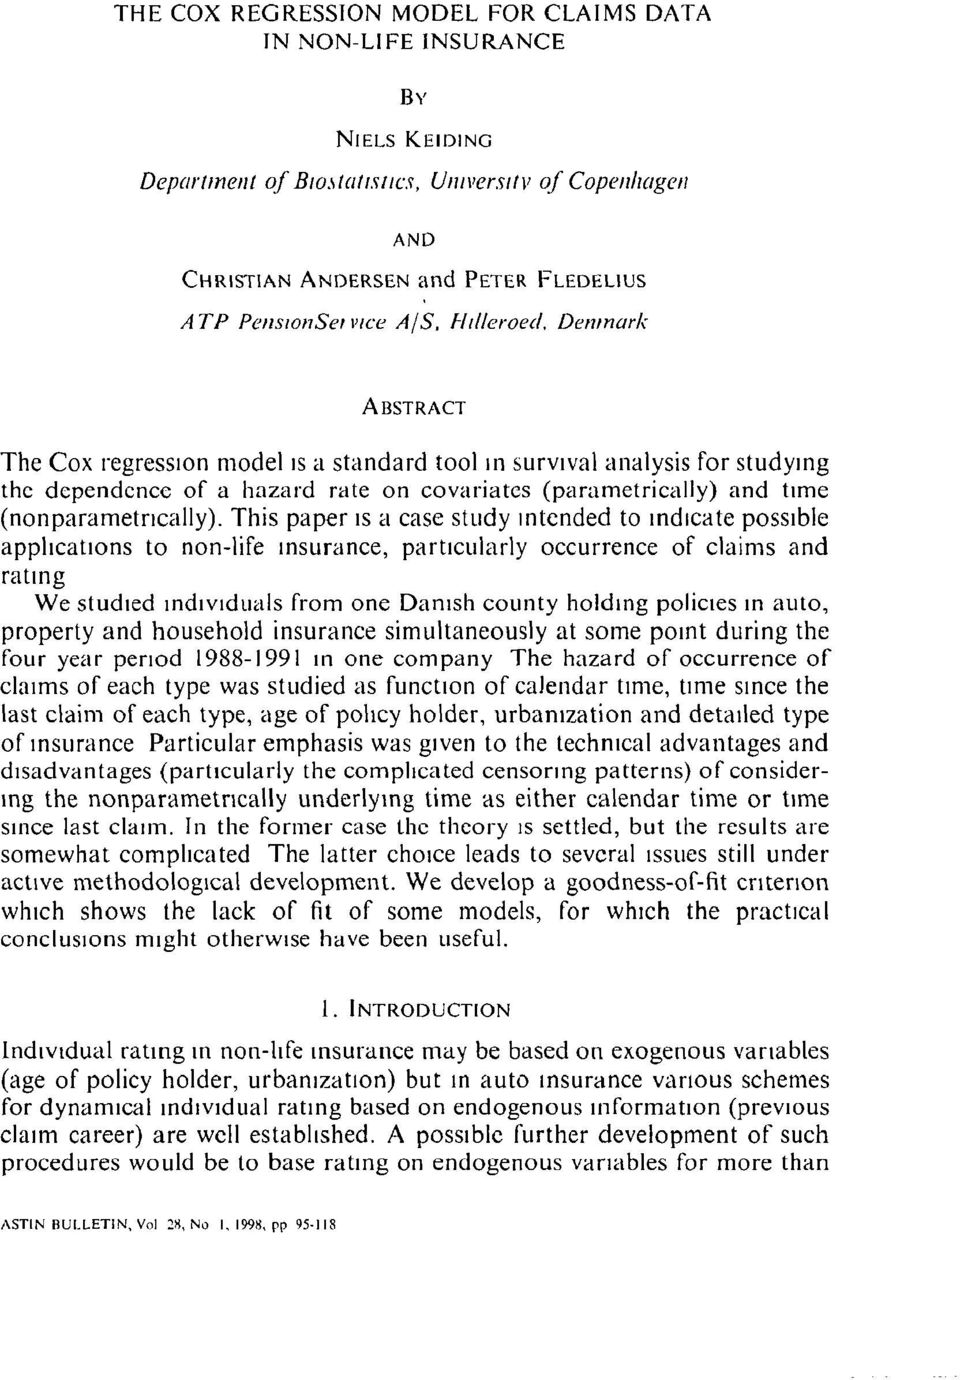 Denmark ABSTRACT The Cox regression model ~s a standard tool m survival analysis for studying the dependence of a hazard rate on covariates (parametrically) and time (nonparametncally).